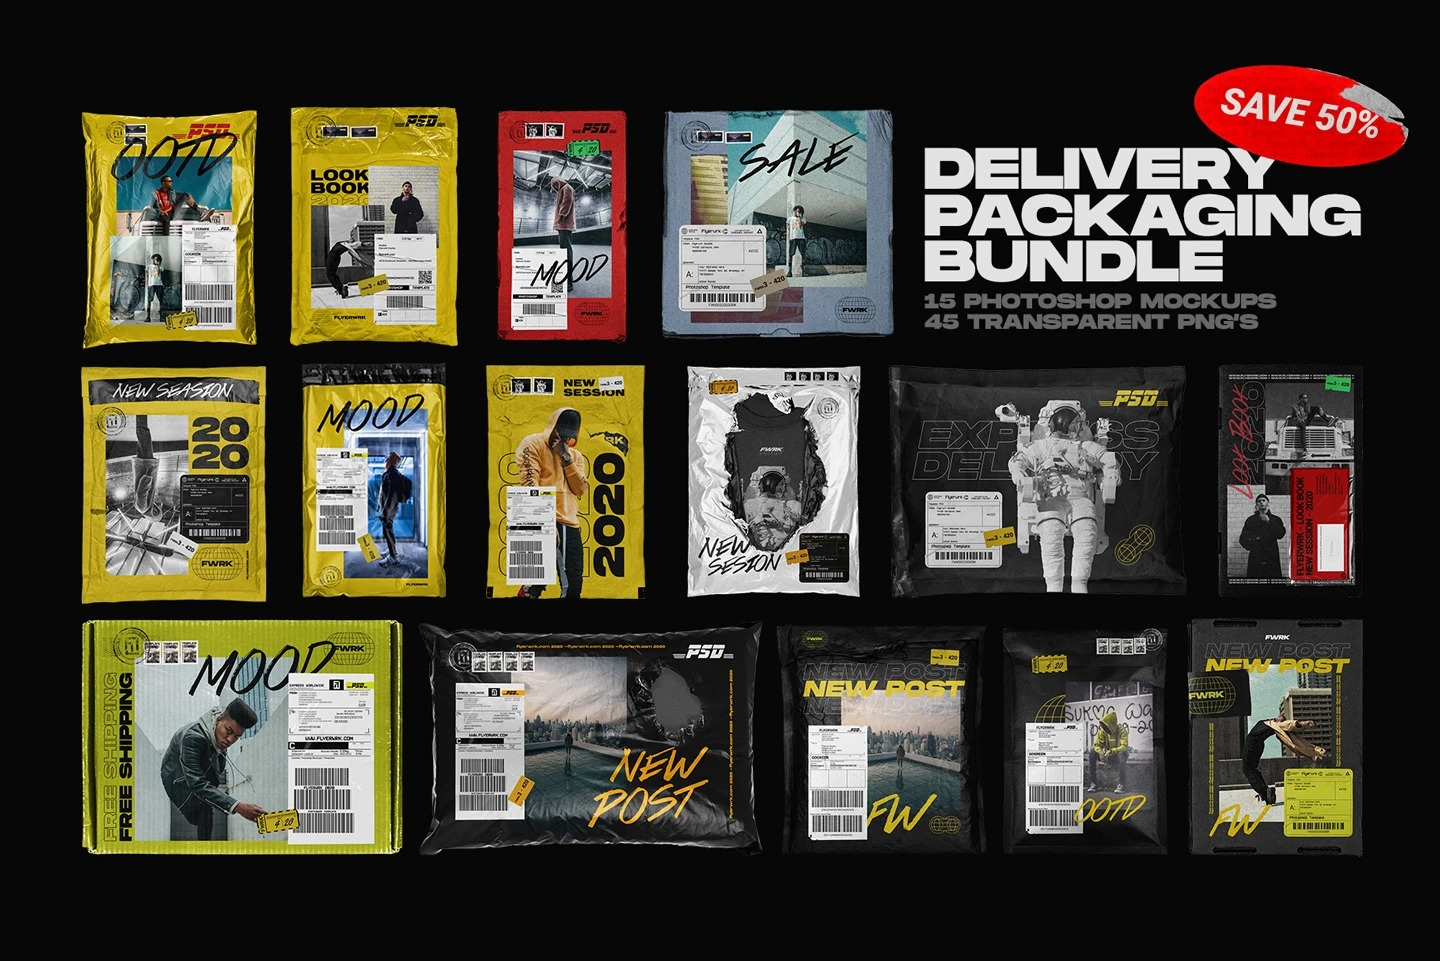 flyerwrk - Delivery Packaging Bundle